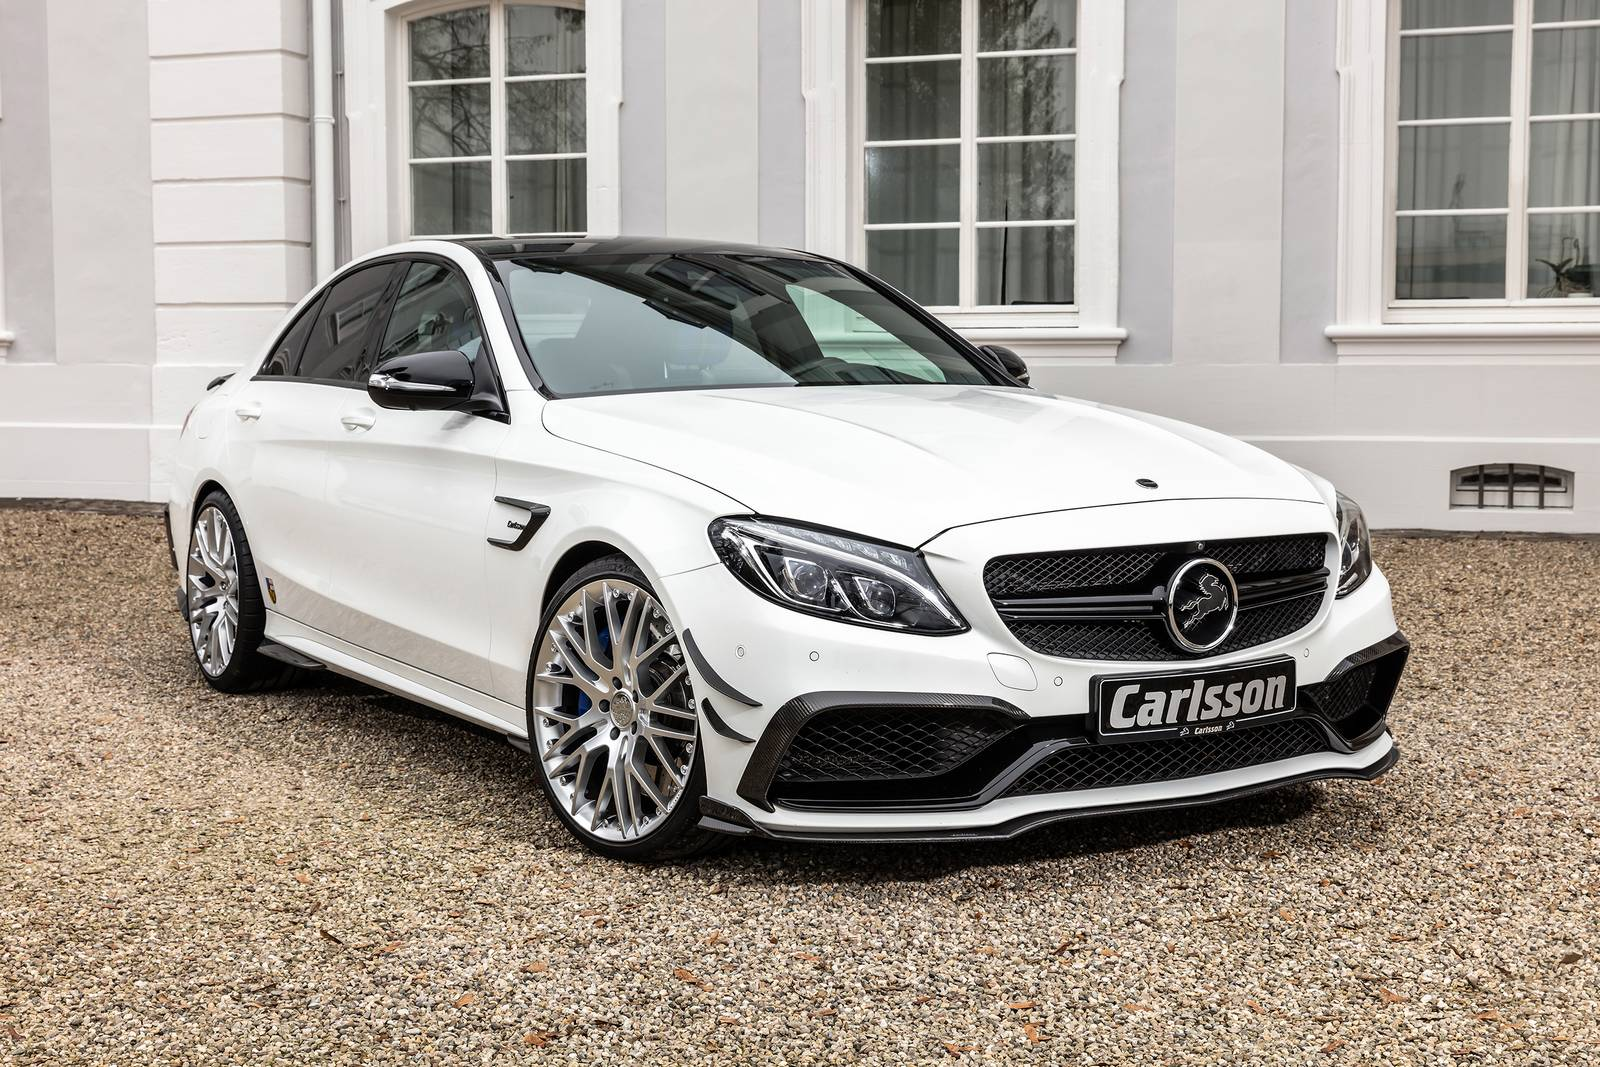 Carlsson CC63S based on Mercedes-AMG C63 S